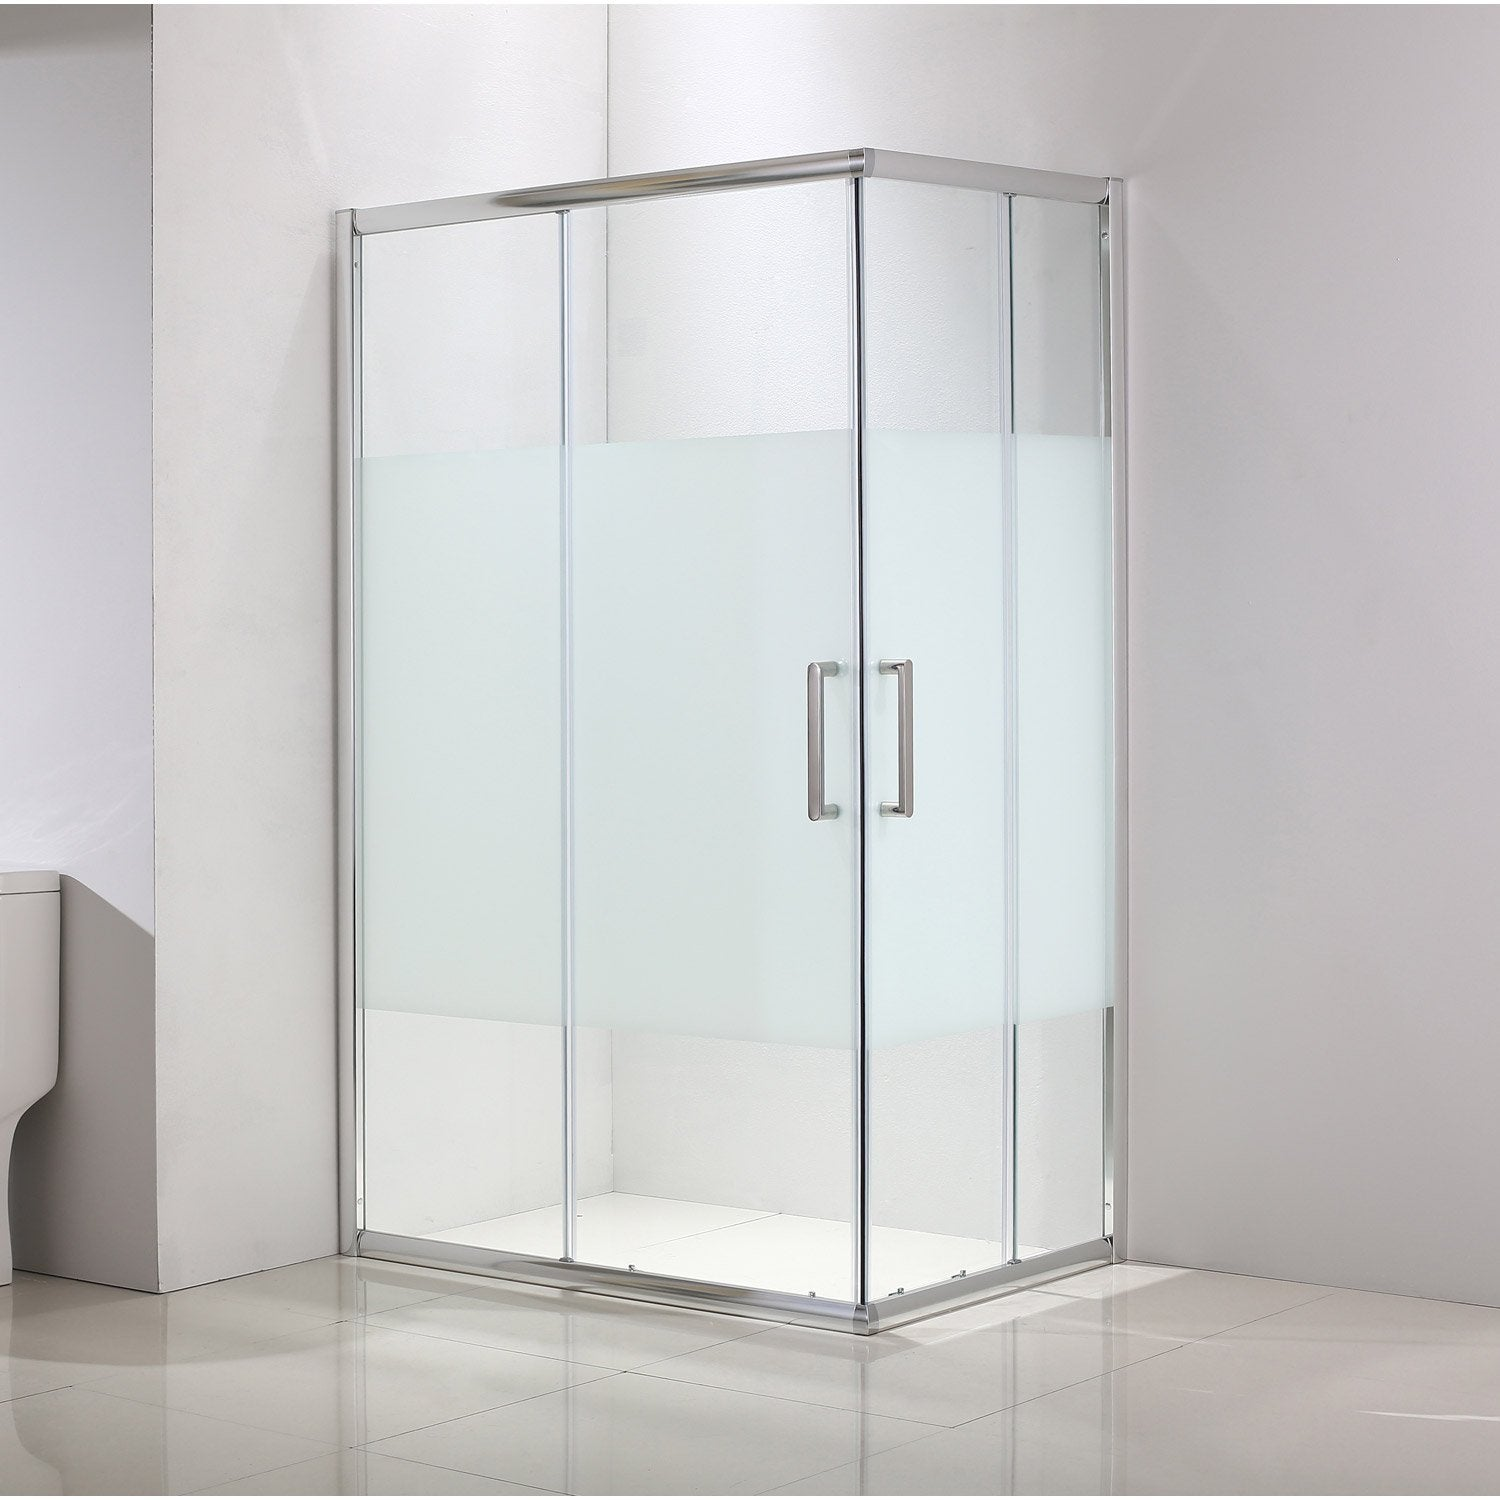 Porte de douche coulissante angle rectangle 120 x 80 cm for Porte de douche a l italienne